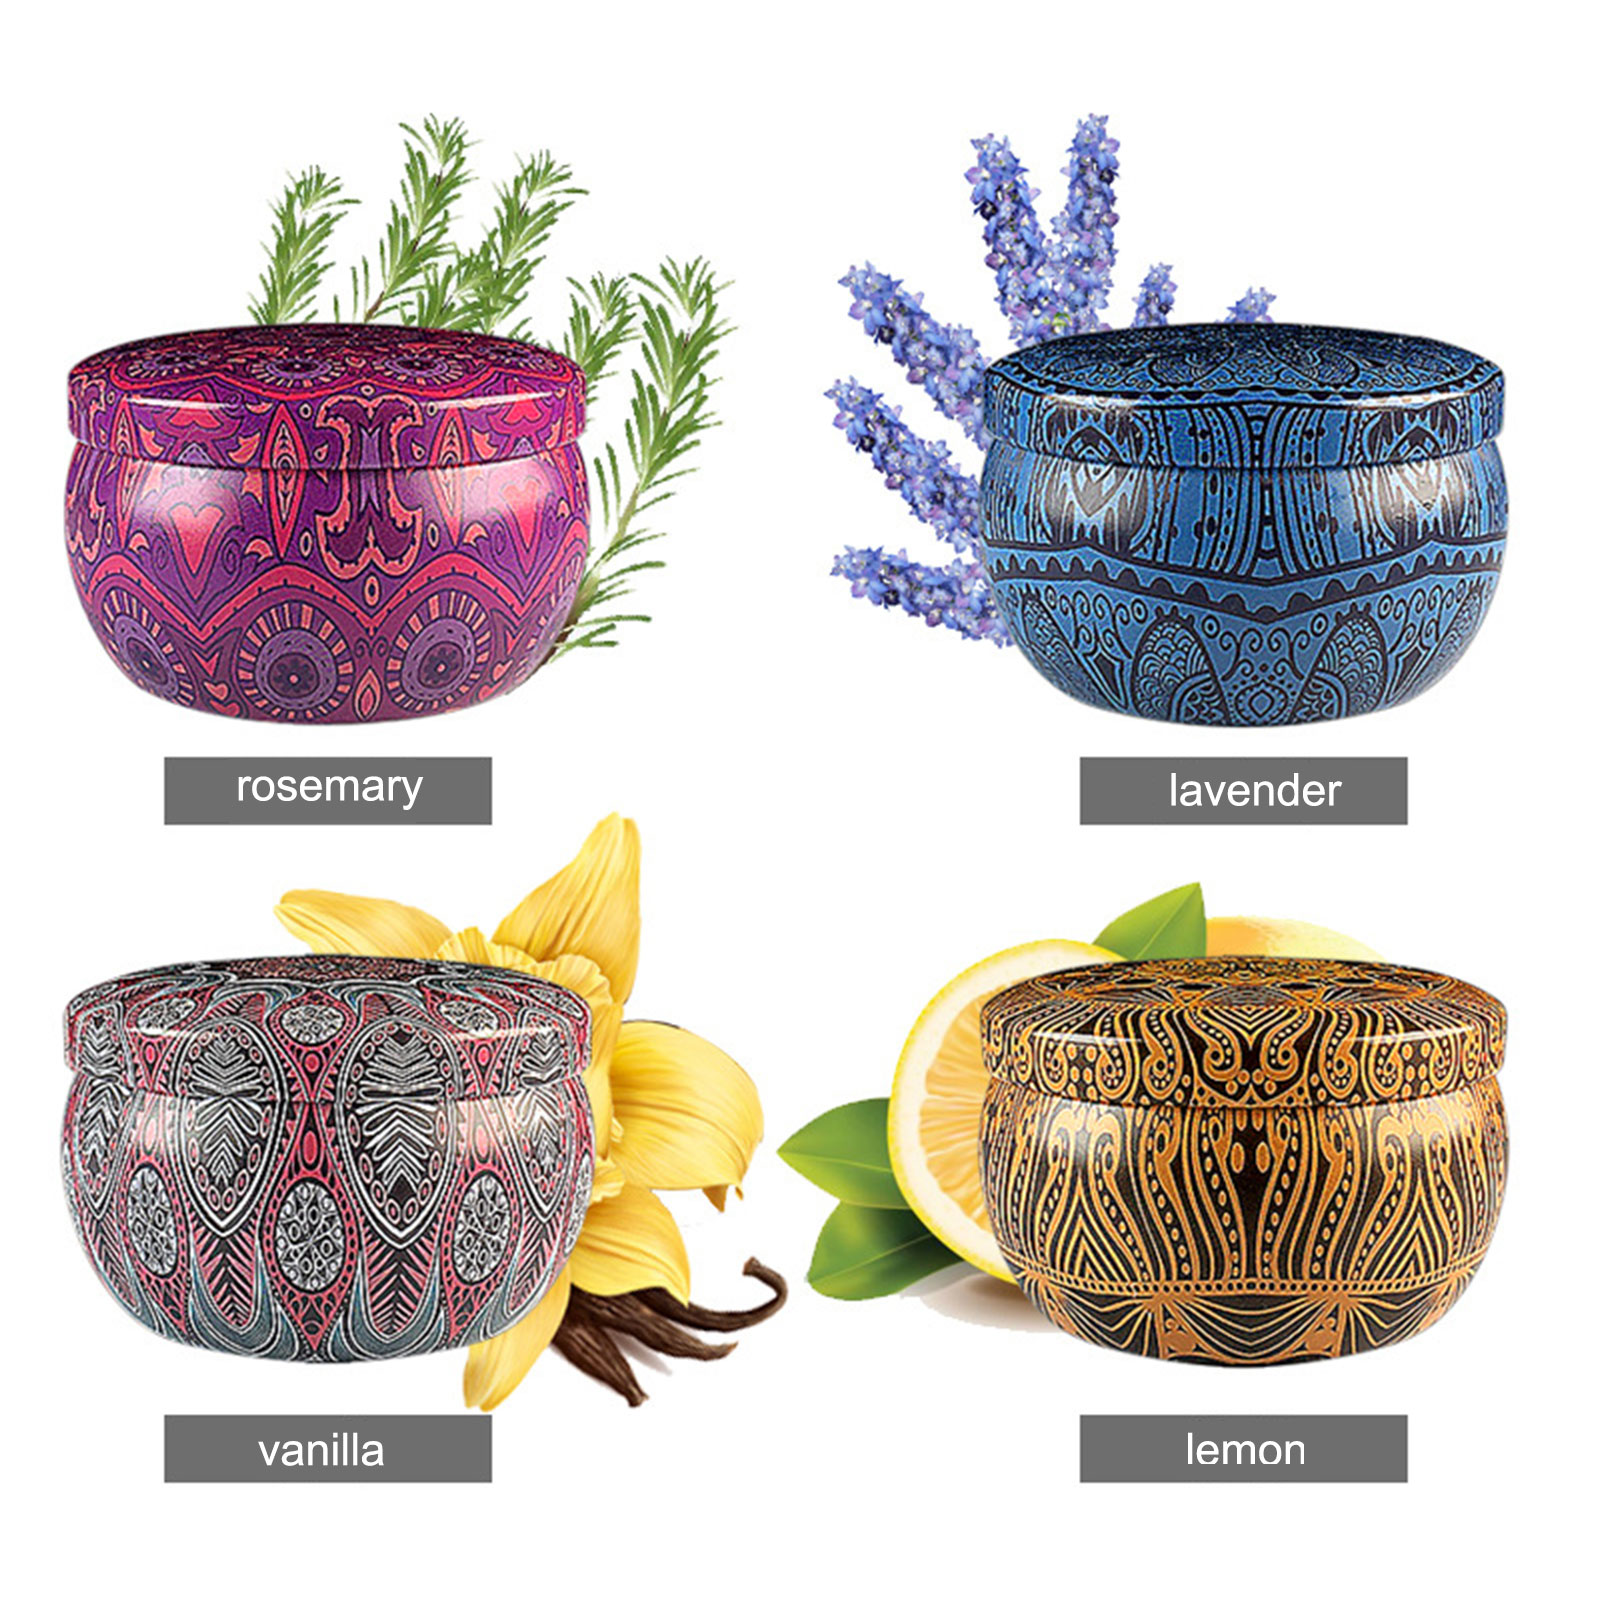 4PCS Scented Candles Tin Can Candle Lavender Rosemary Lemon Aromatherapy Candle Tinplate Box Soy Wax Candle For Home Decor